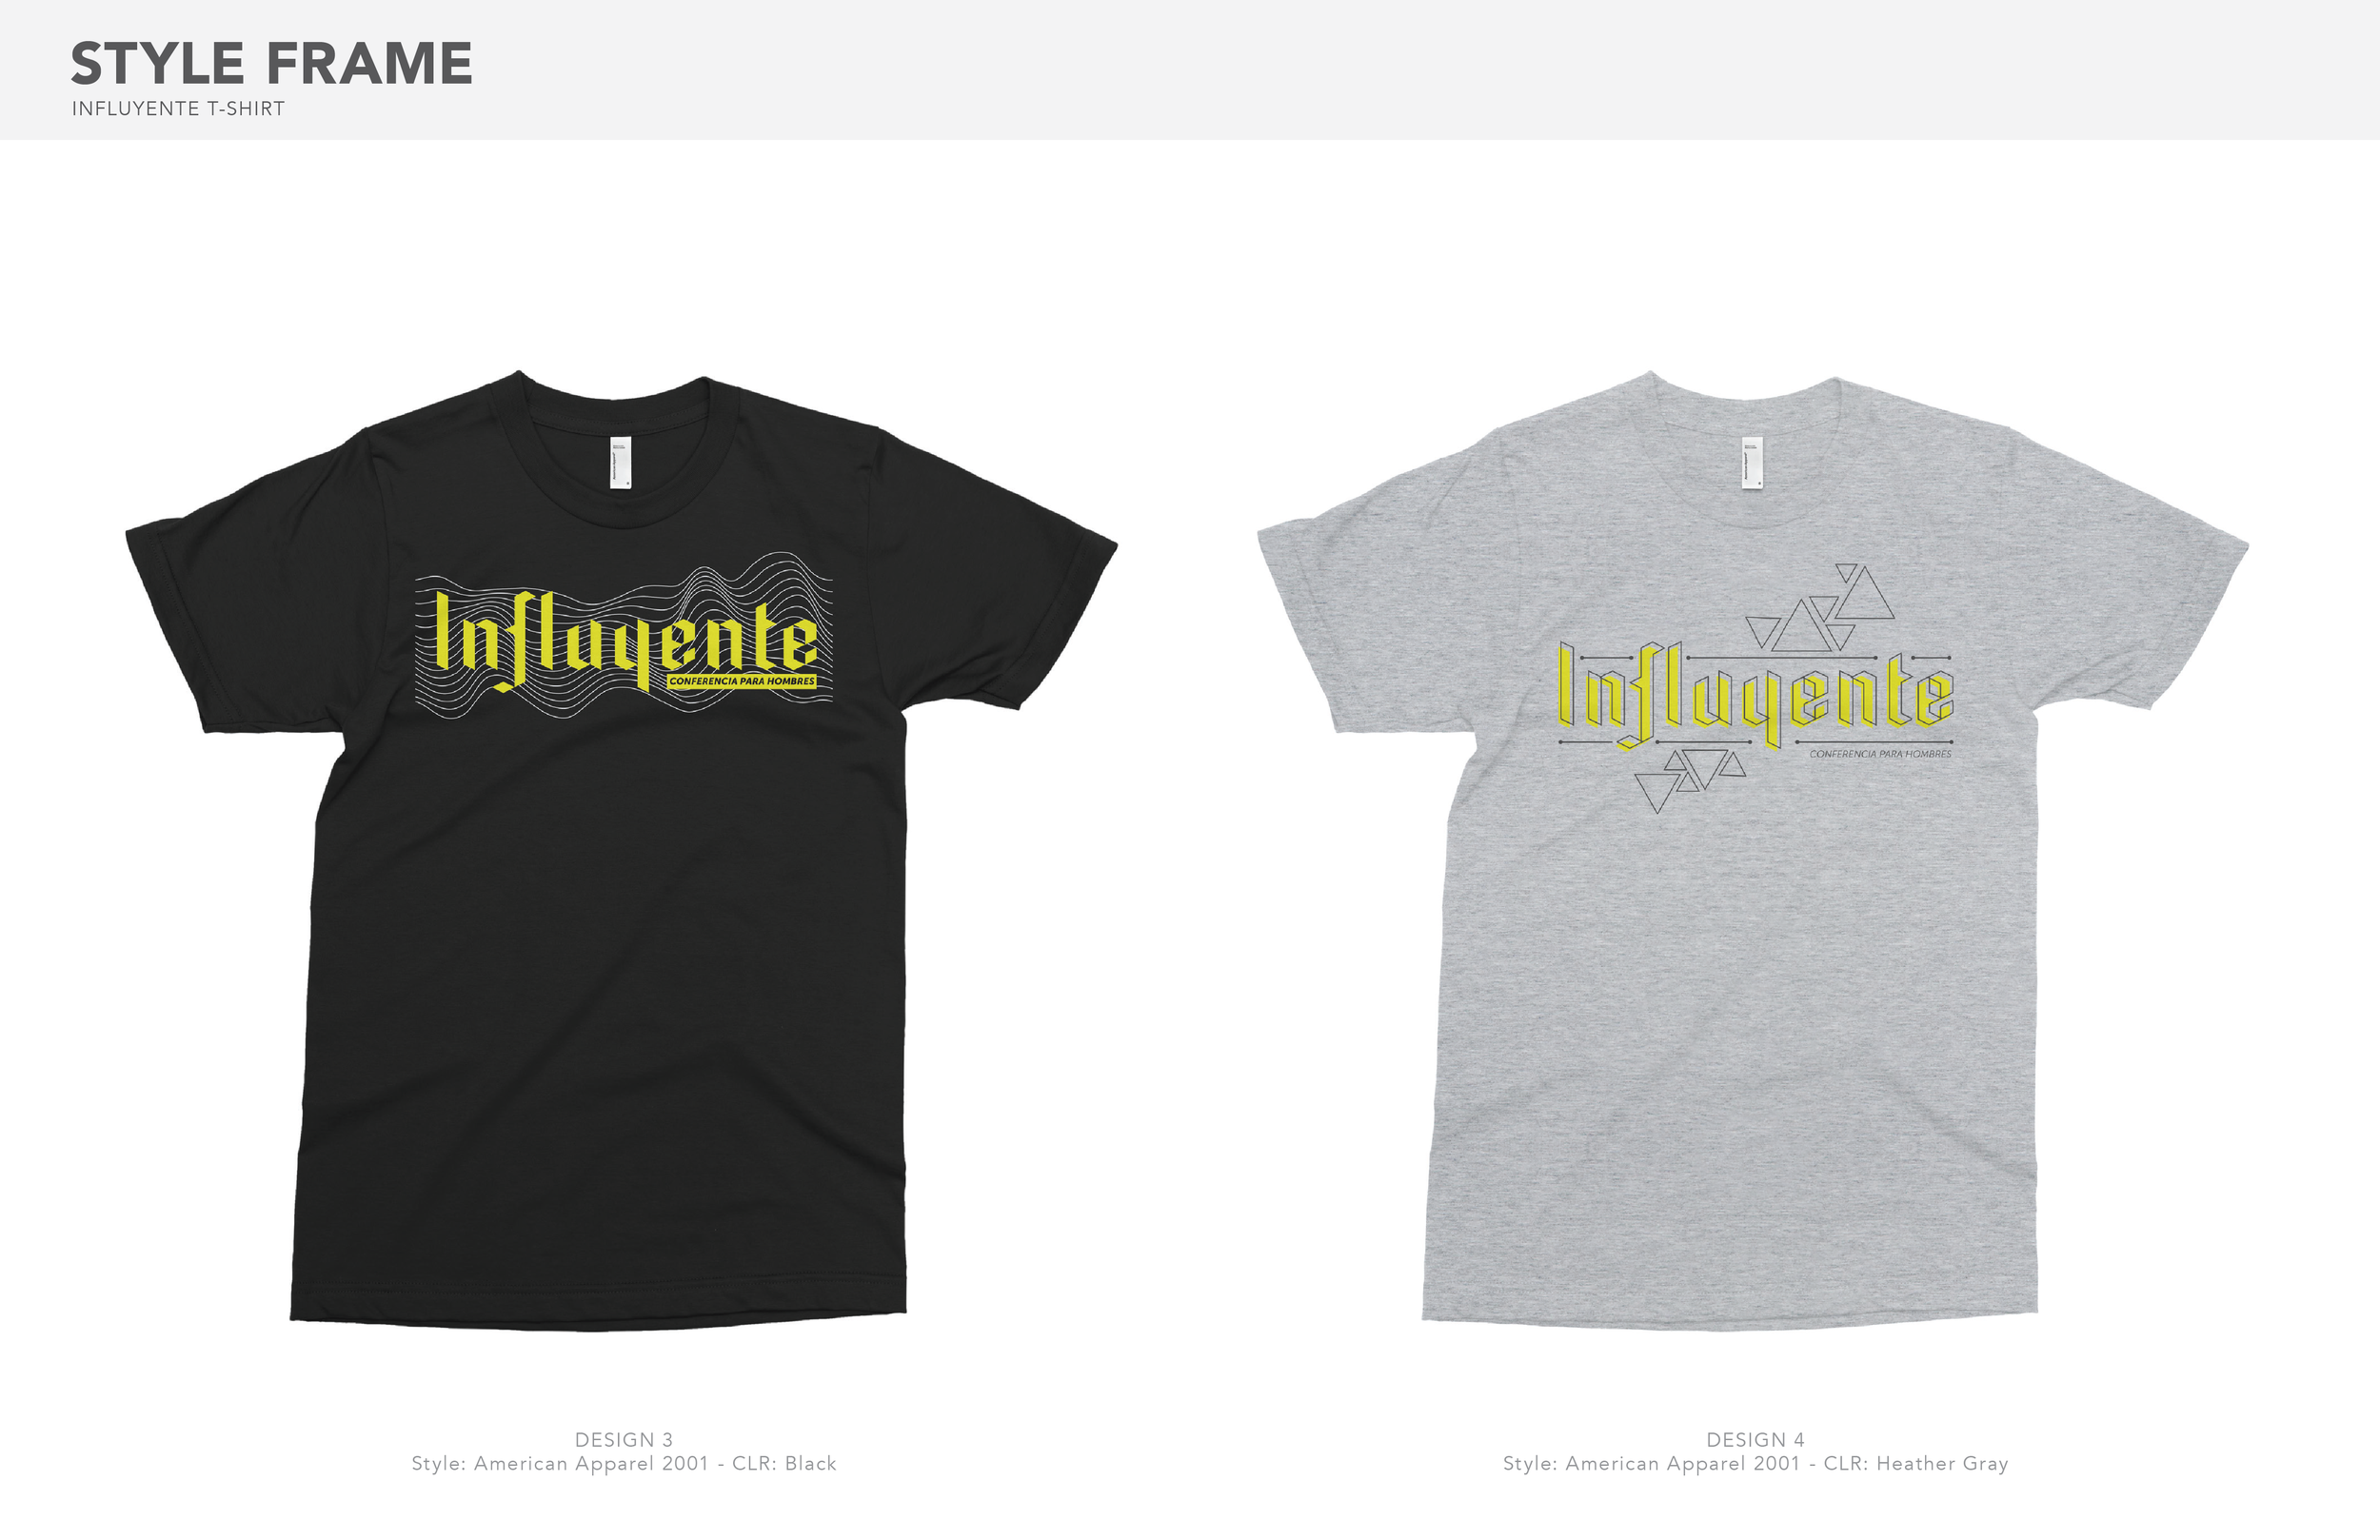 Influyente-Tshirt-StyleFrames_2-01.png